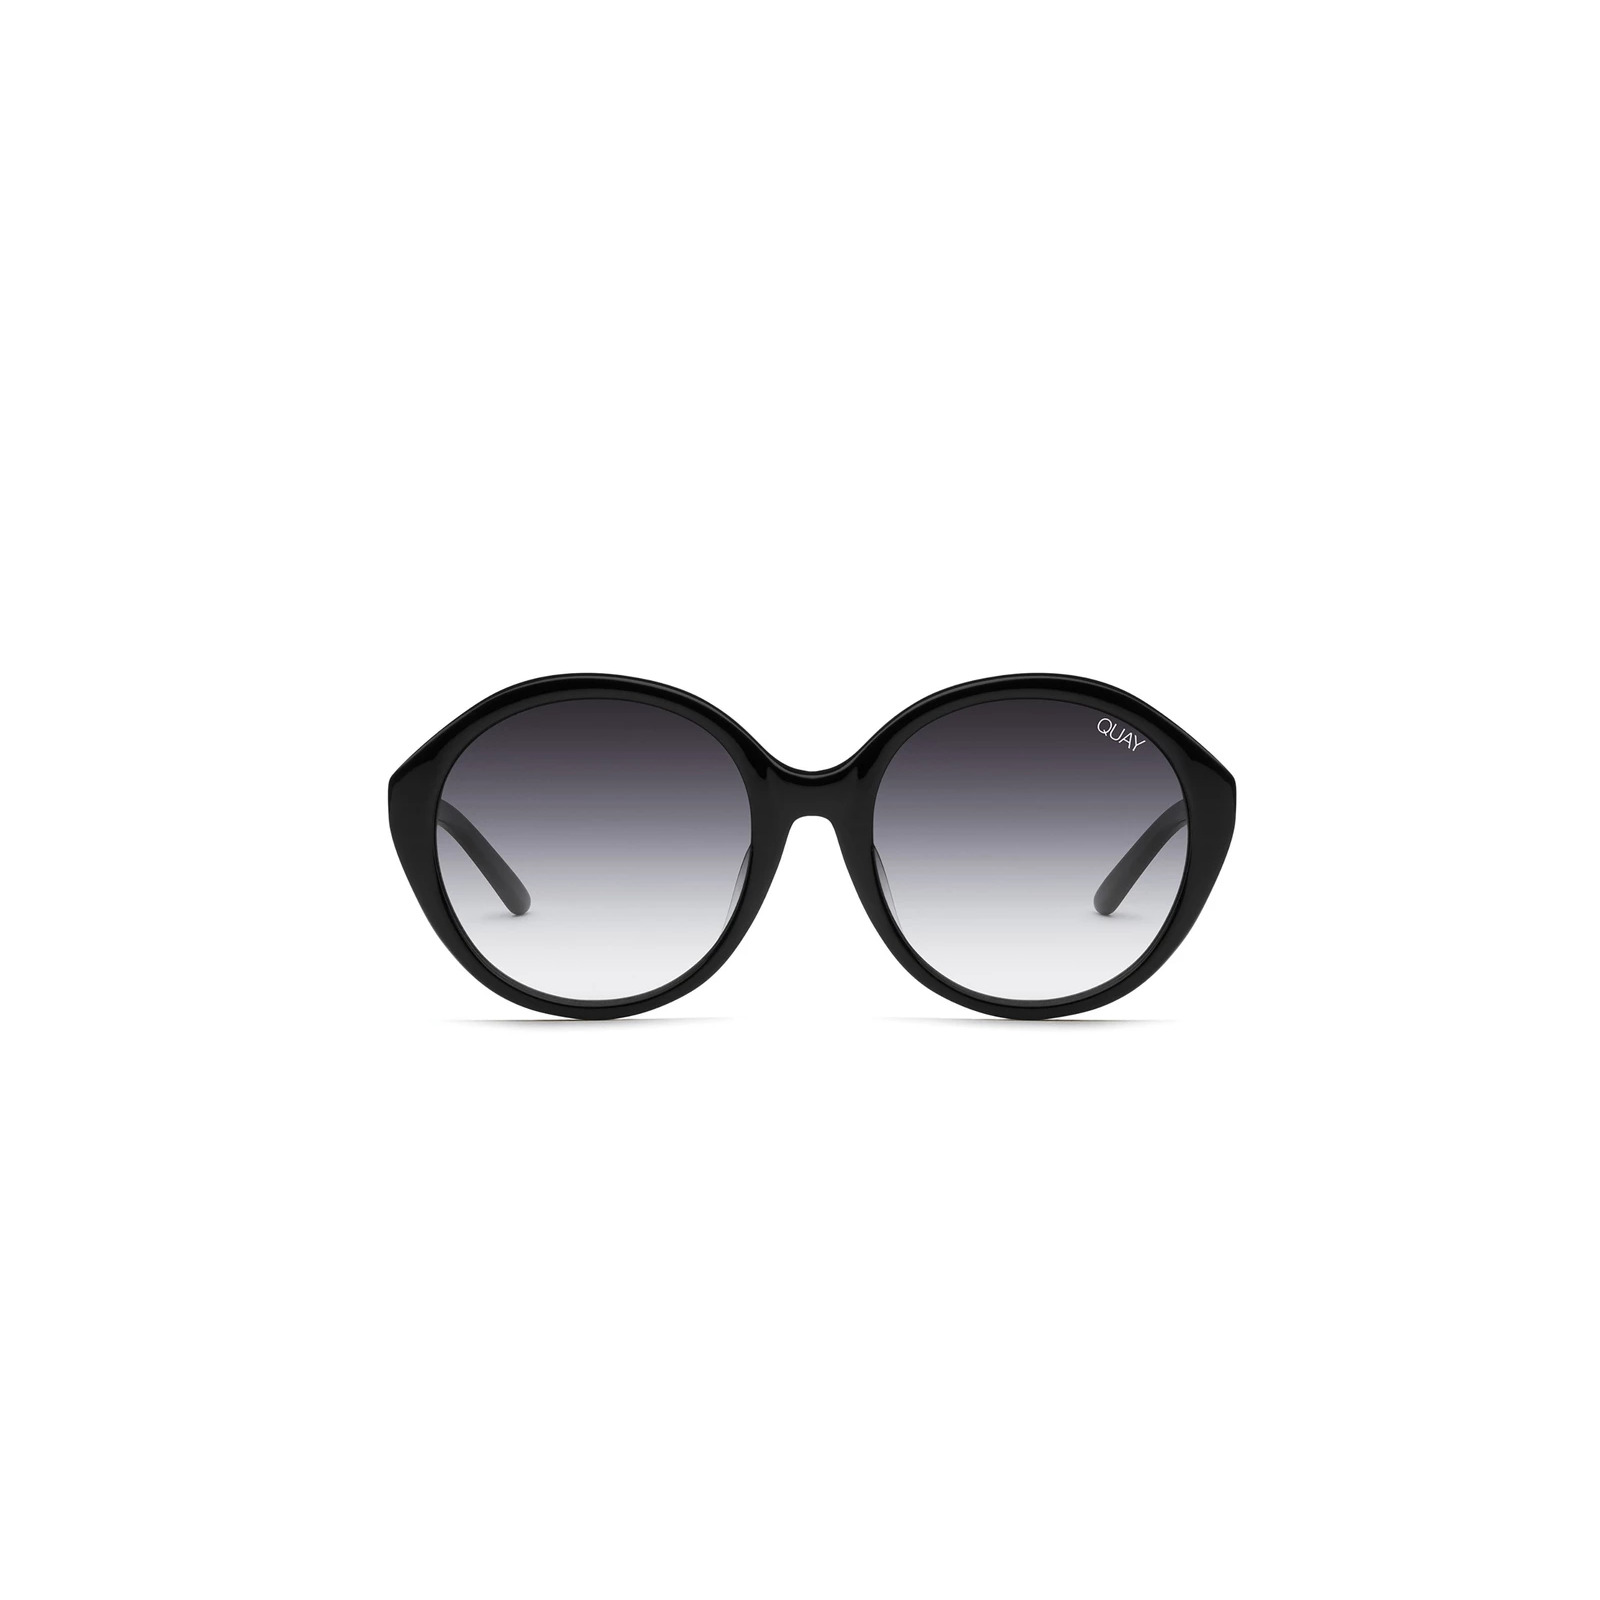 QUAY TINTED LOVE BLACK SUNGLASSES